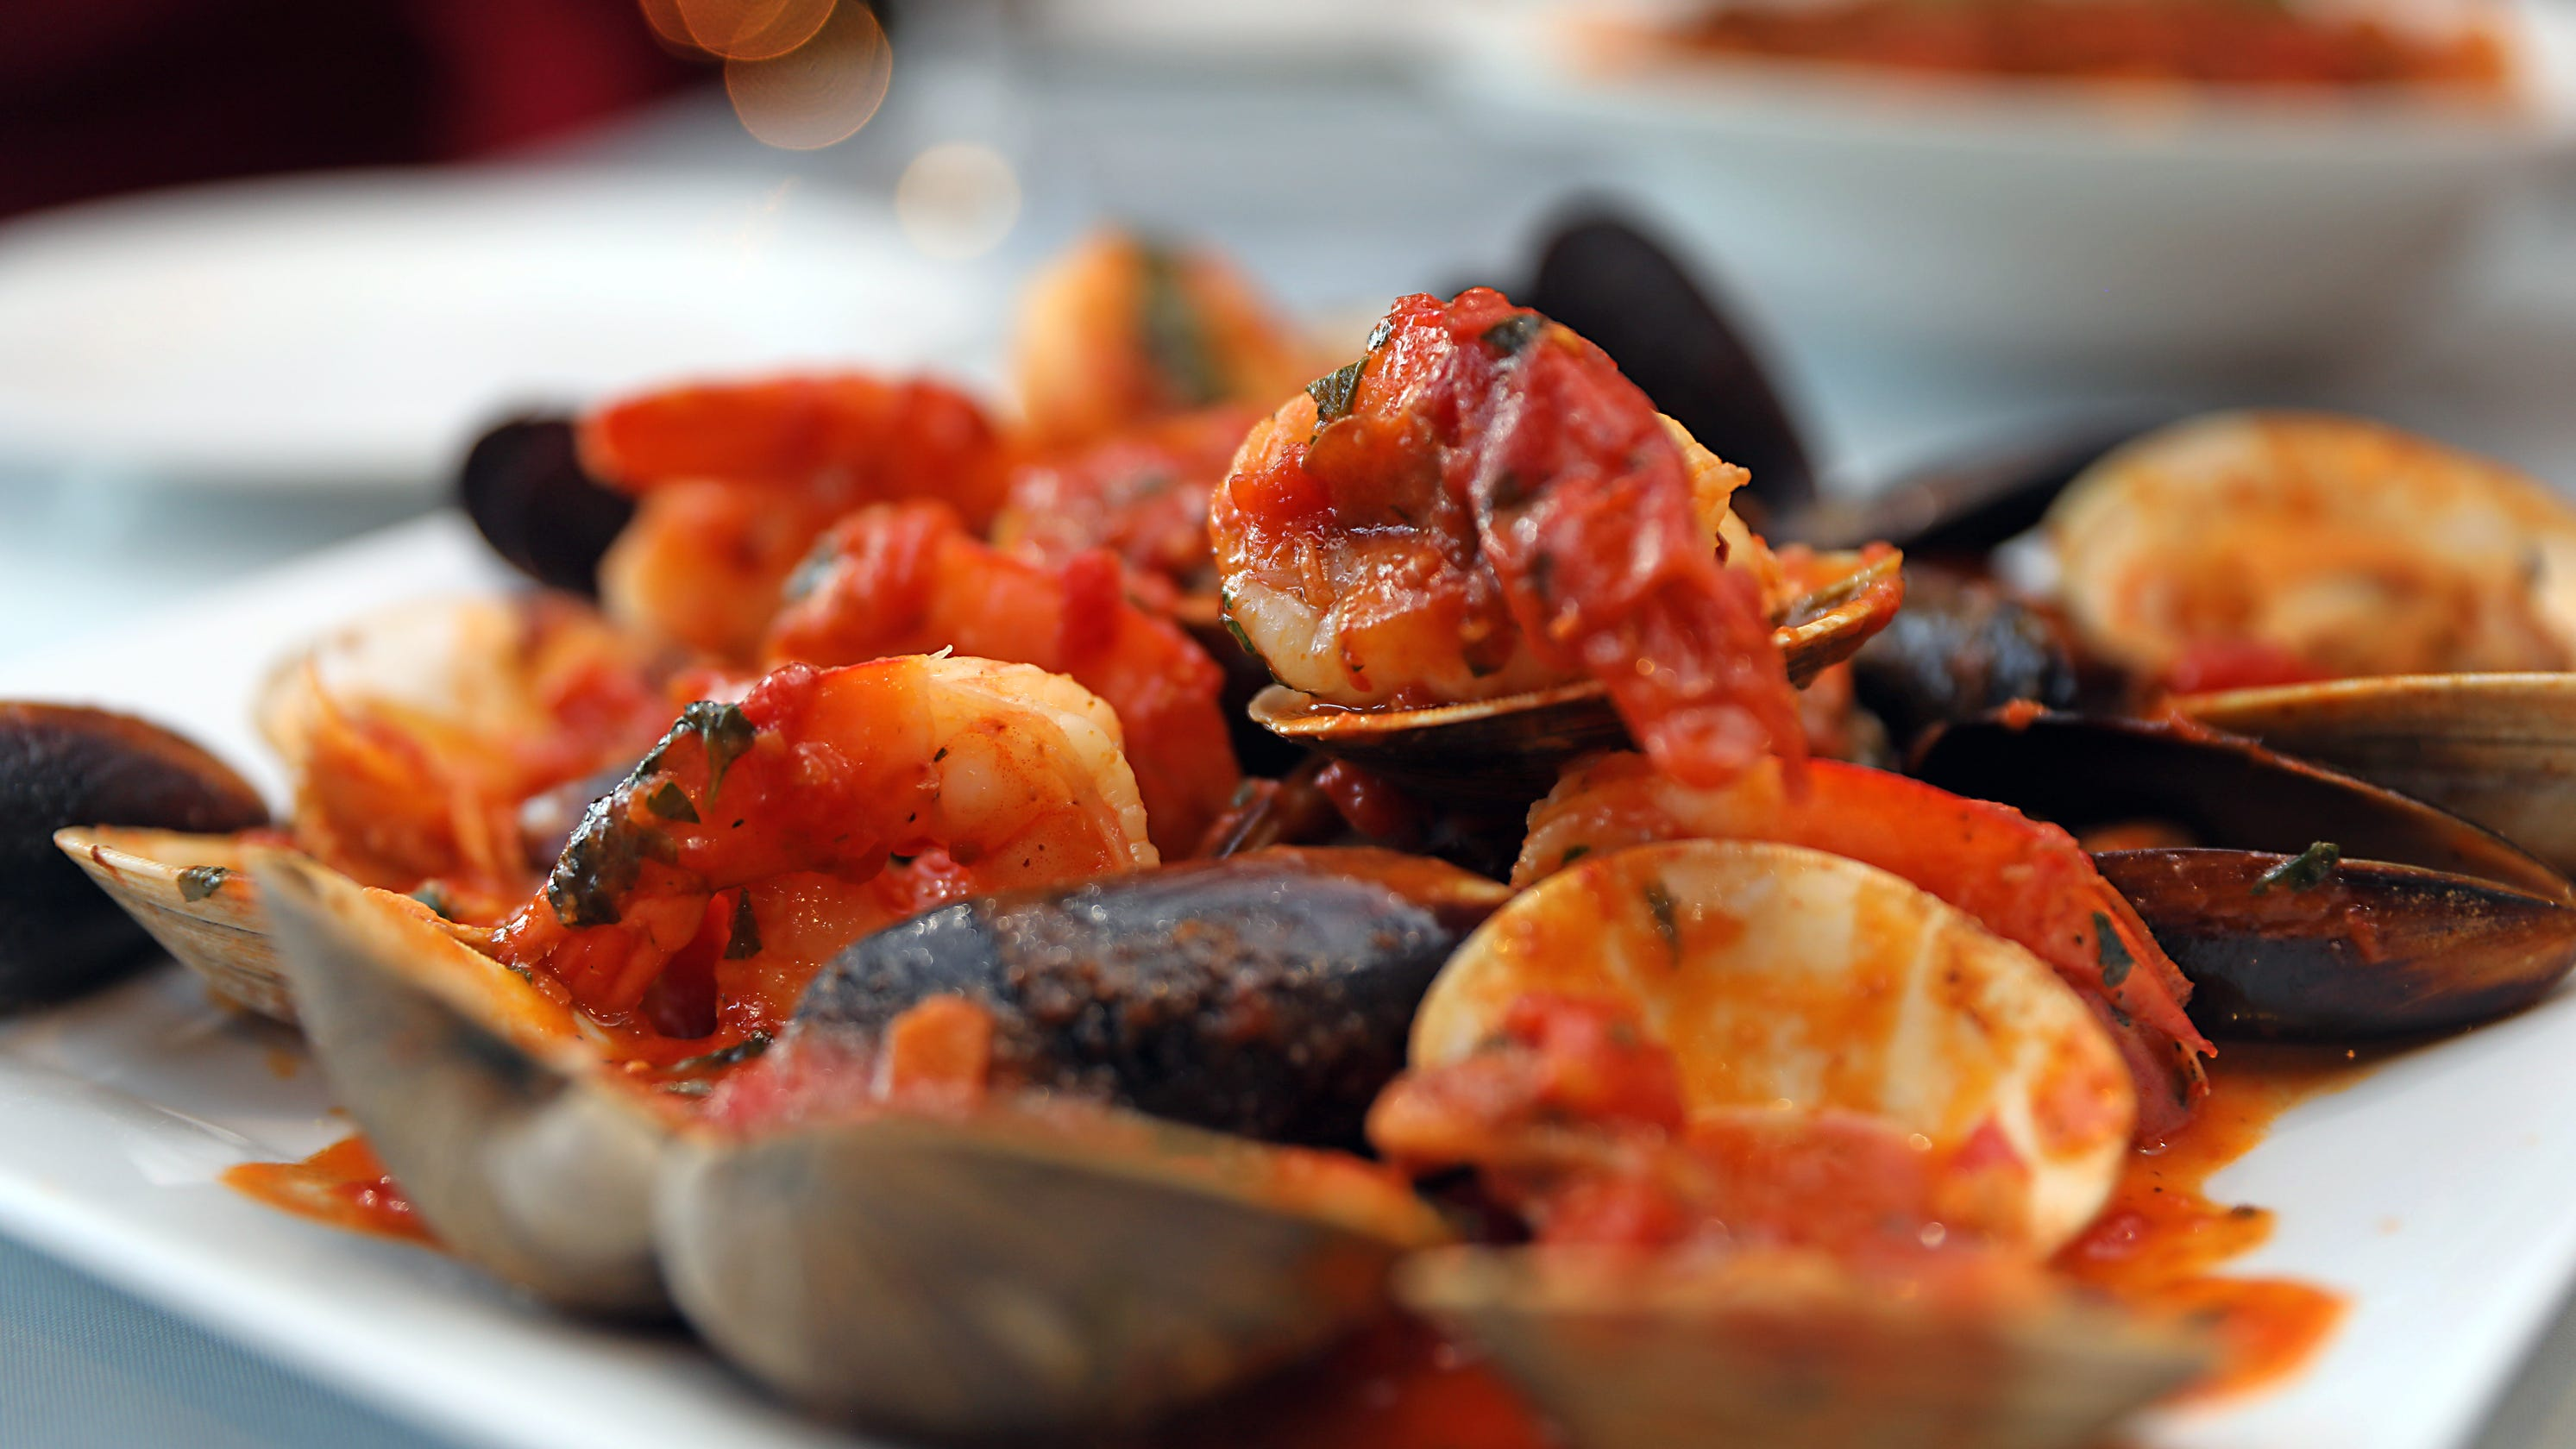 Comment Ranger Ma Cuisine yonkers is tops when it comes to italian cuisine says an